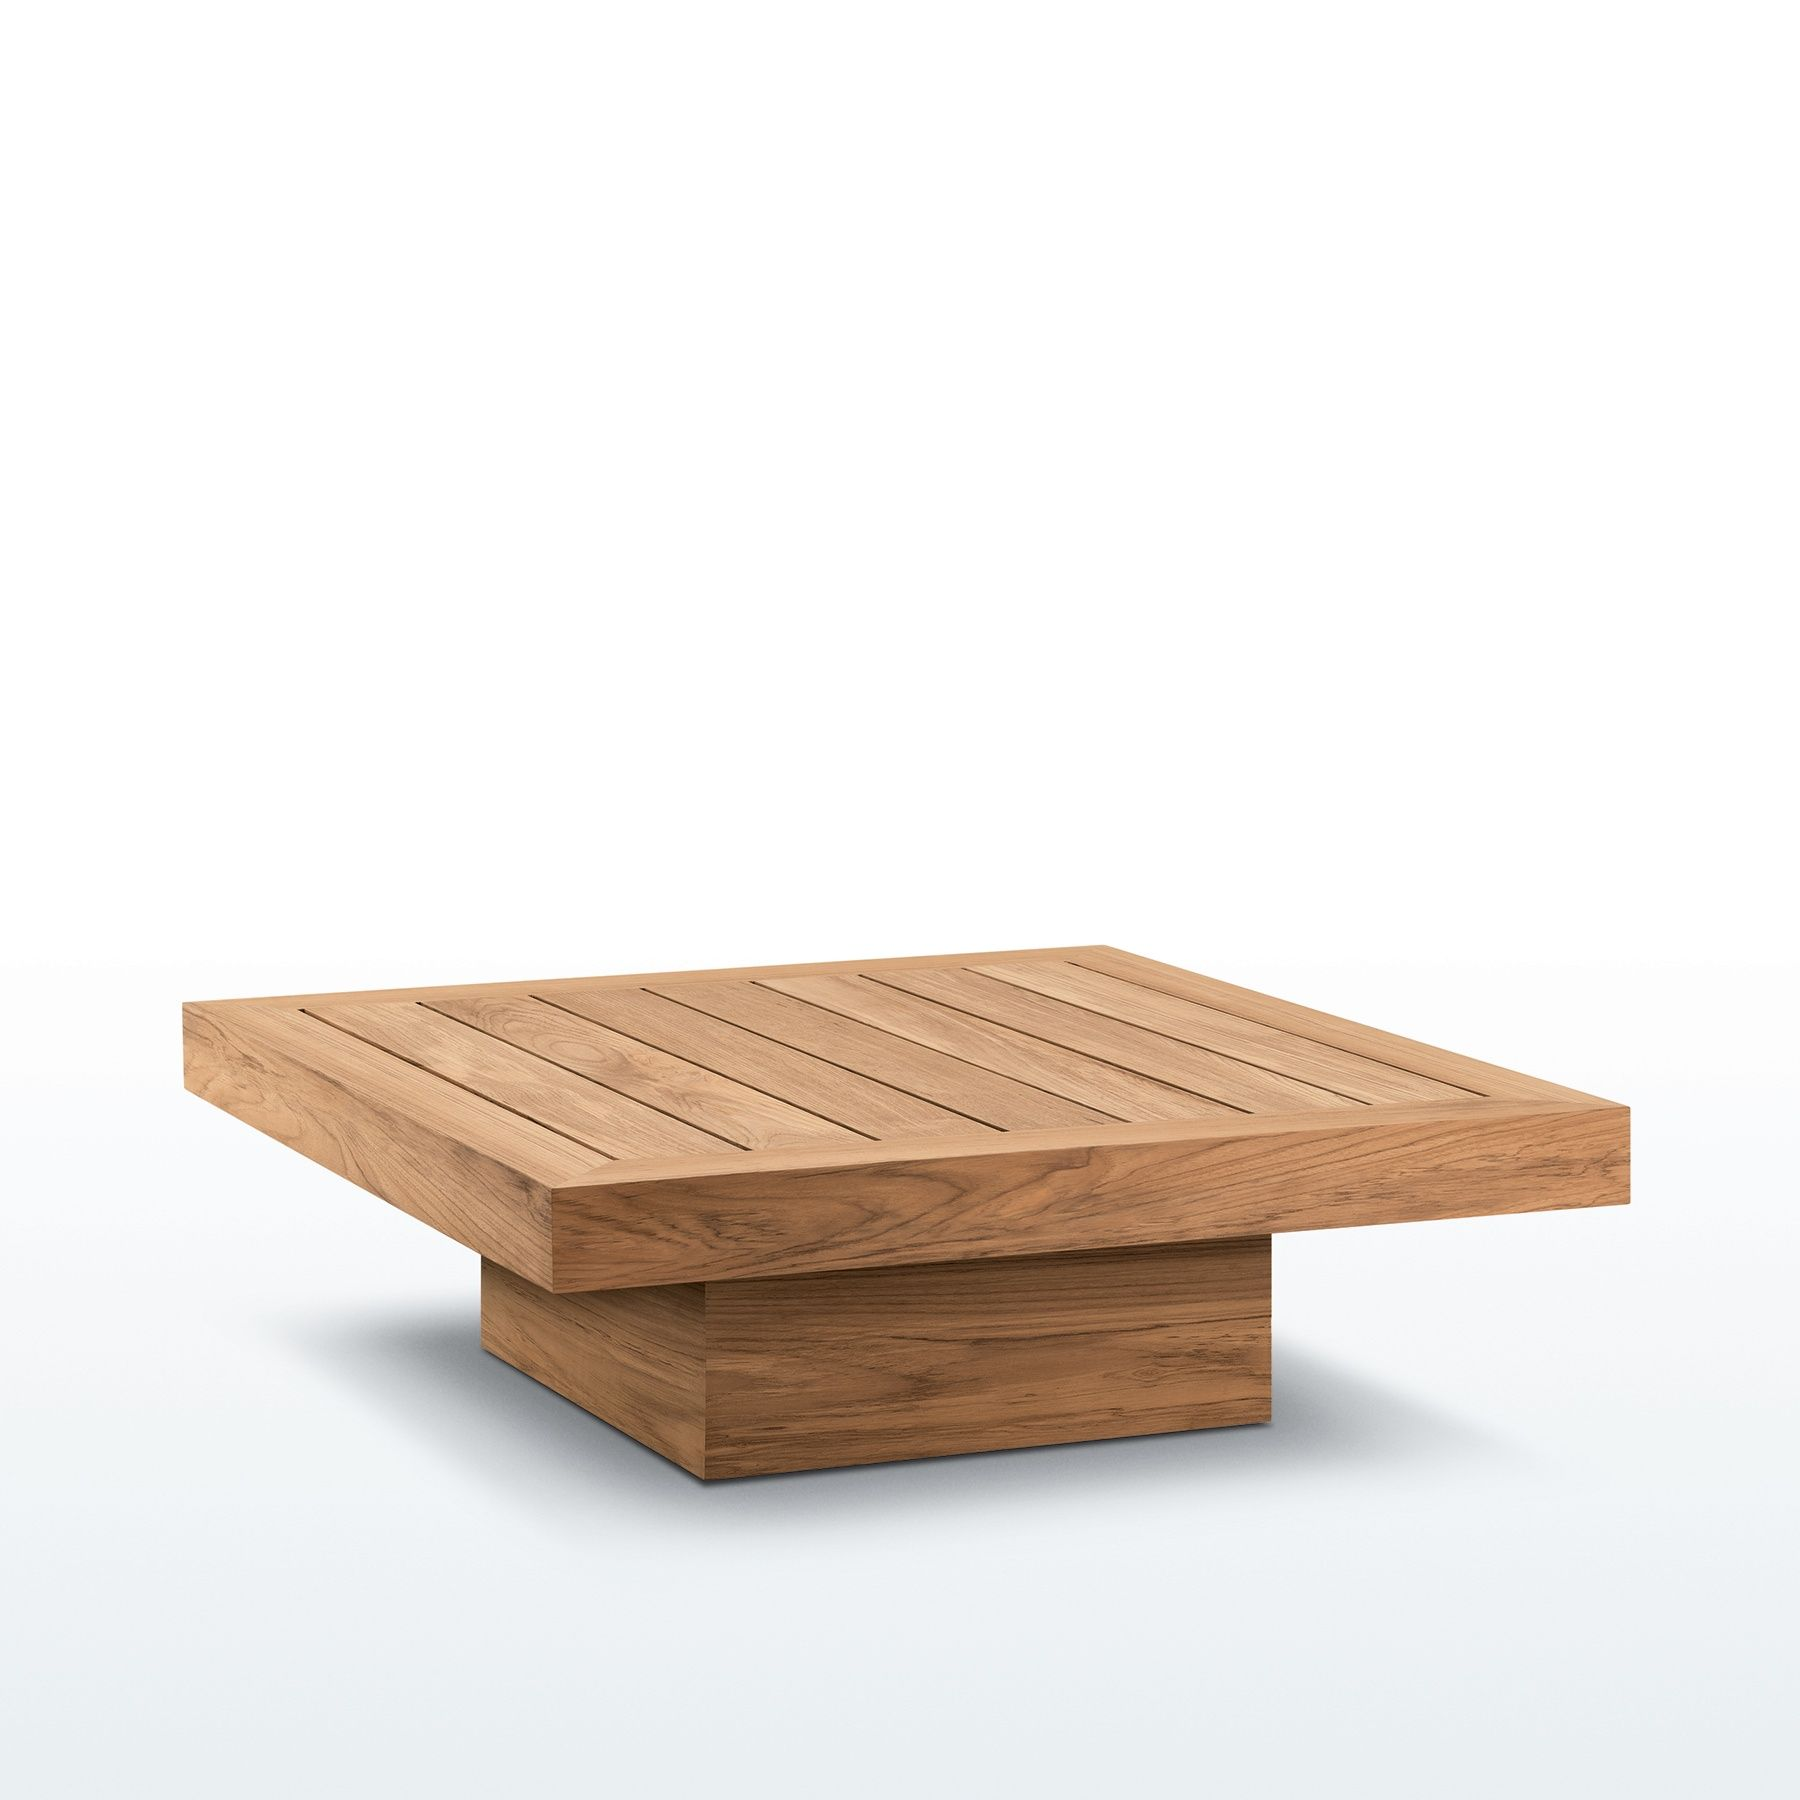 MONTECITO FLOATING COFFEE TABLE Malibu Collections Furniture